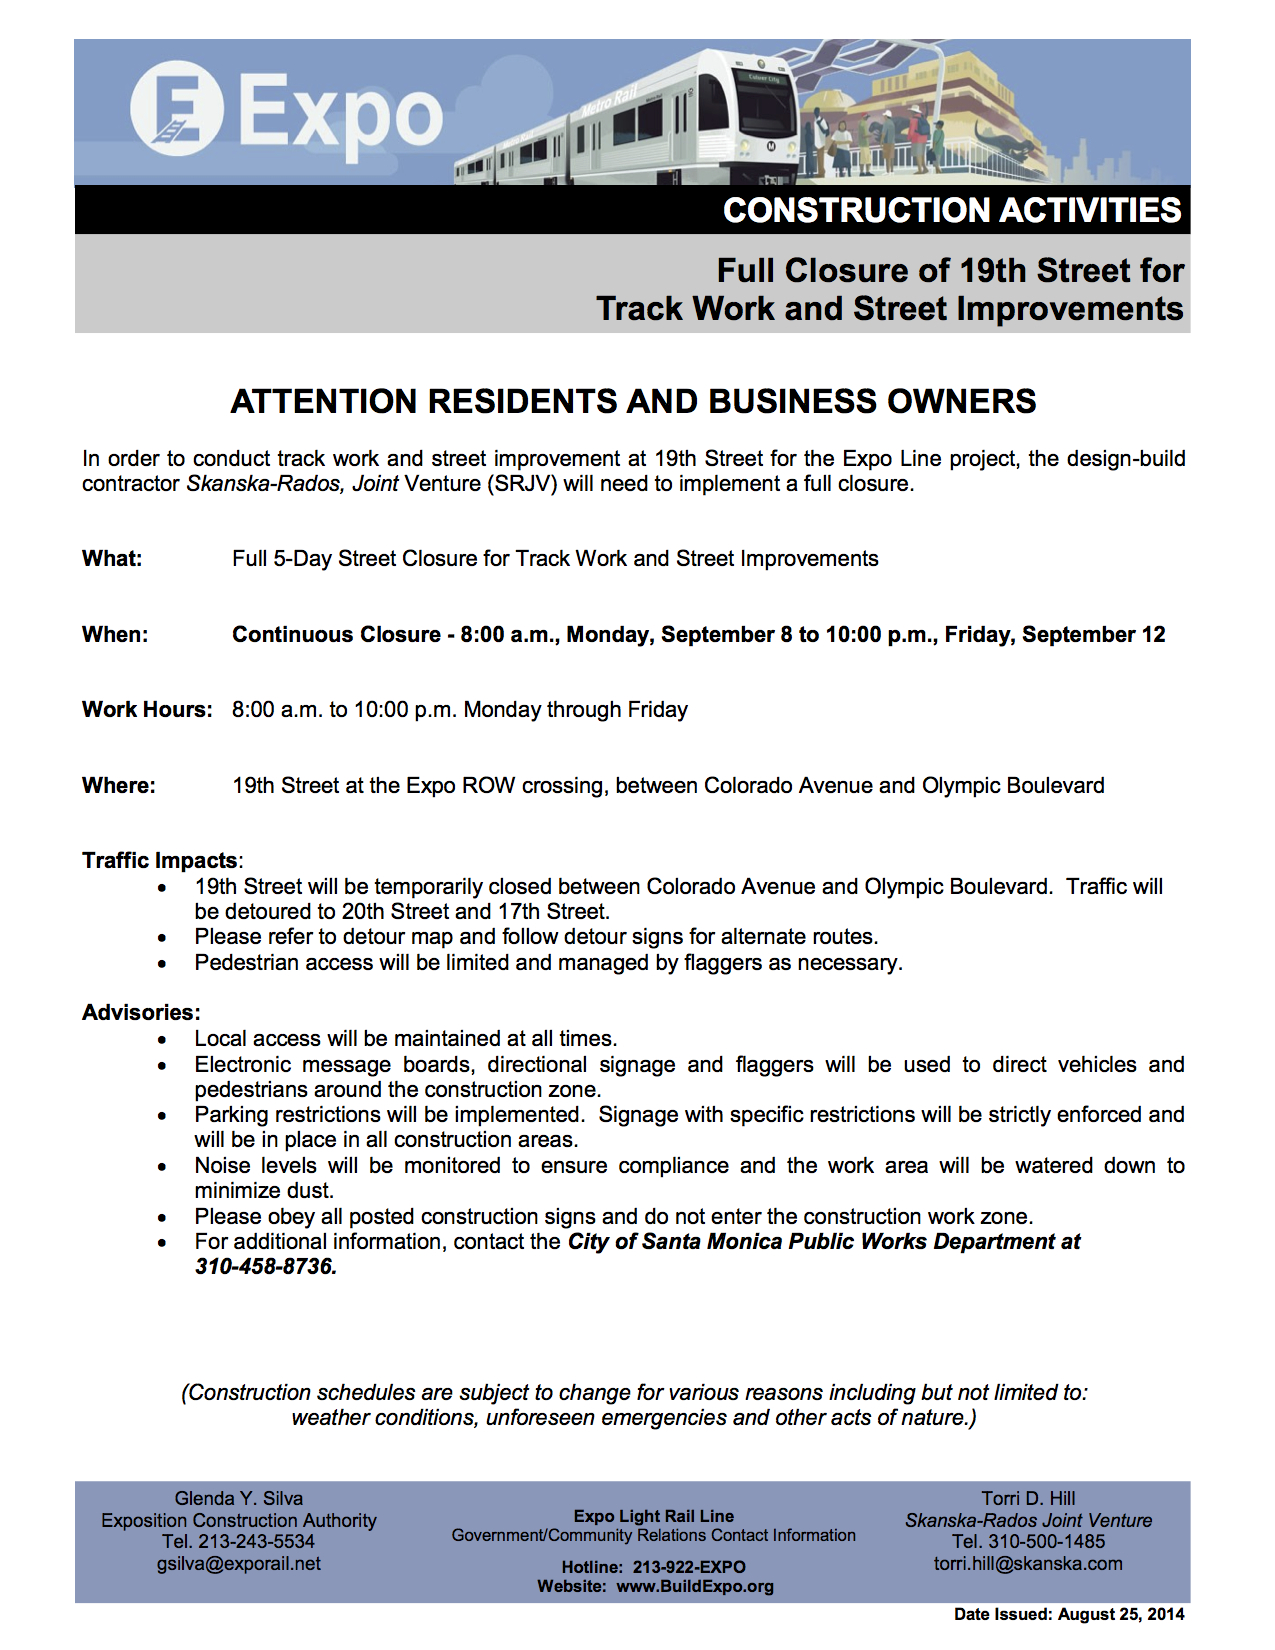 082214-EXPO-P2-CONSTRUCTION-NOTICE-19th-Street-Track-Work-and-Street-Improvements-